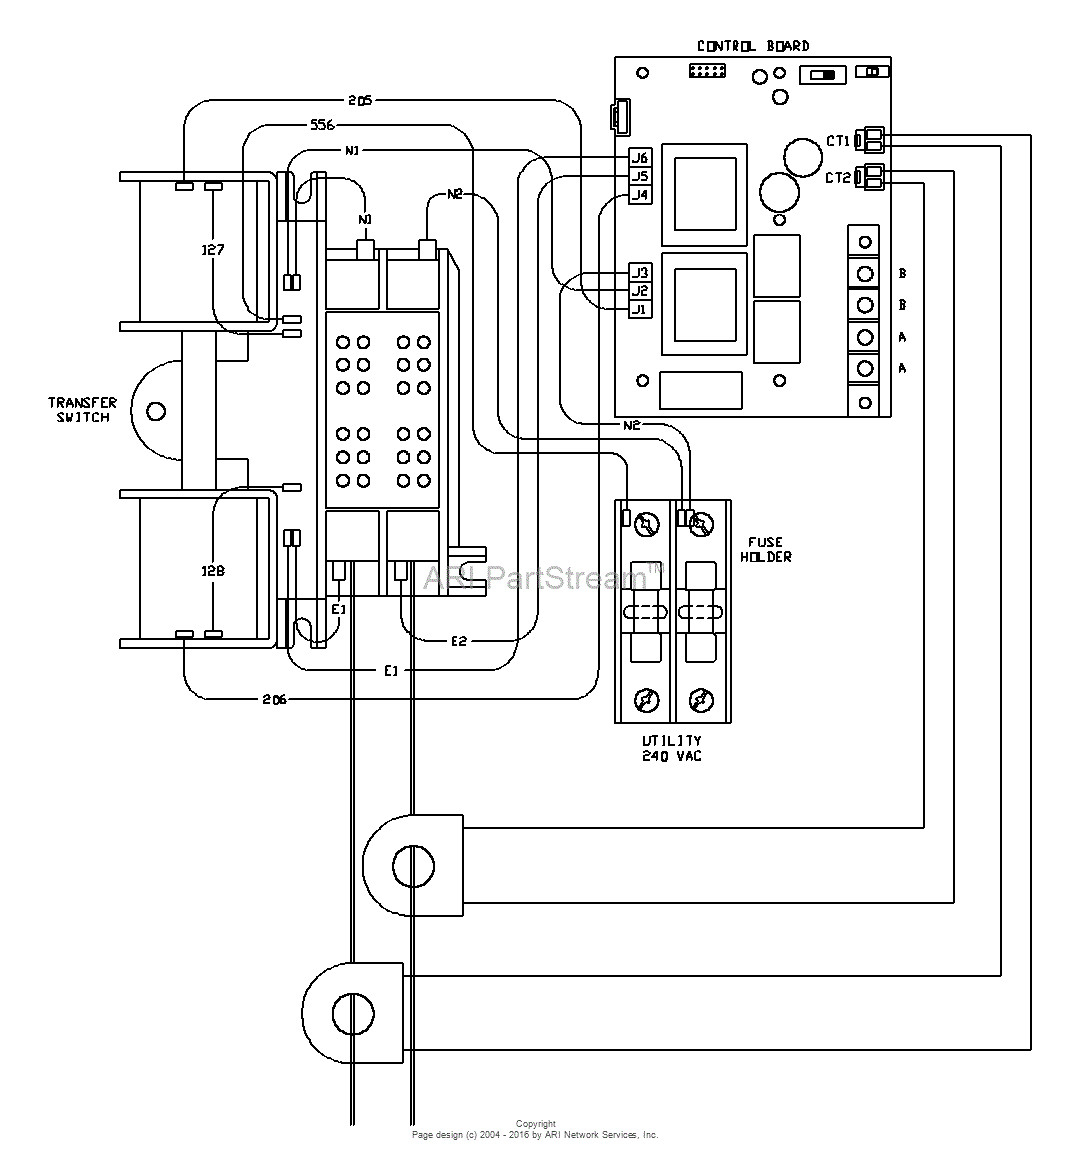 generac rtf 3 phase transfer switch wiring diagram 3 phase reversing switch wiring diagram generac manual transfer switch wiring diagram download #8